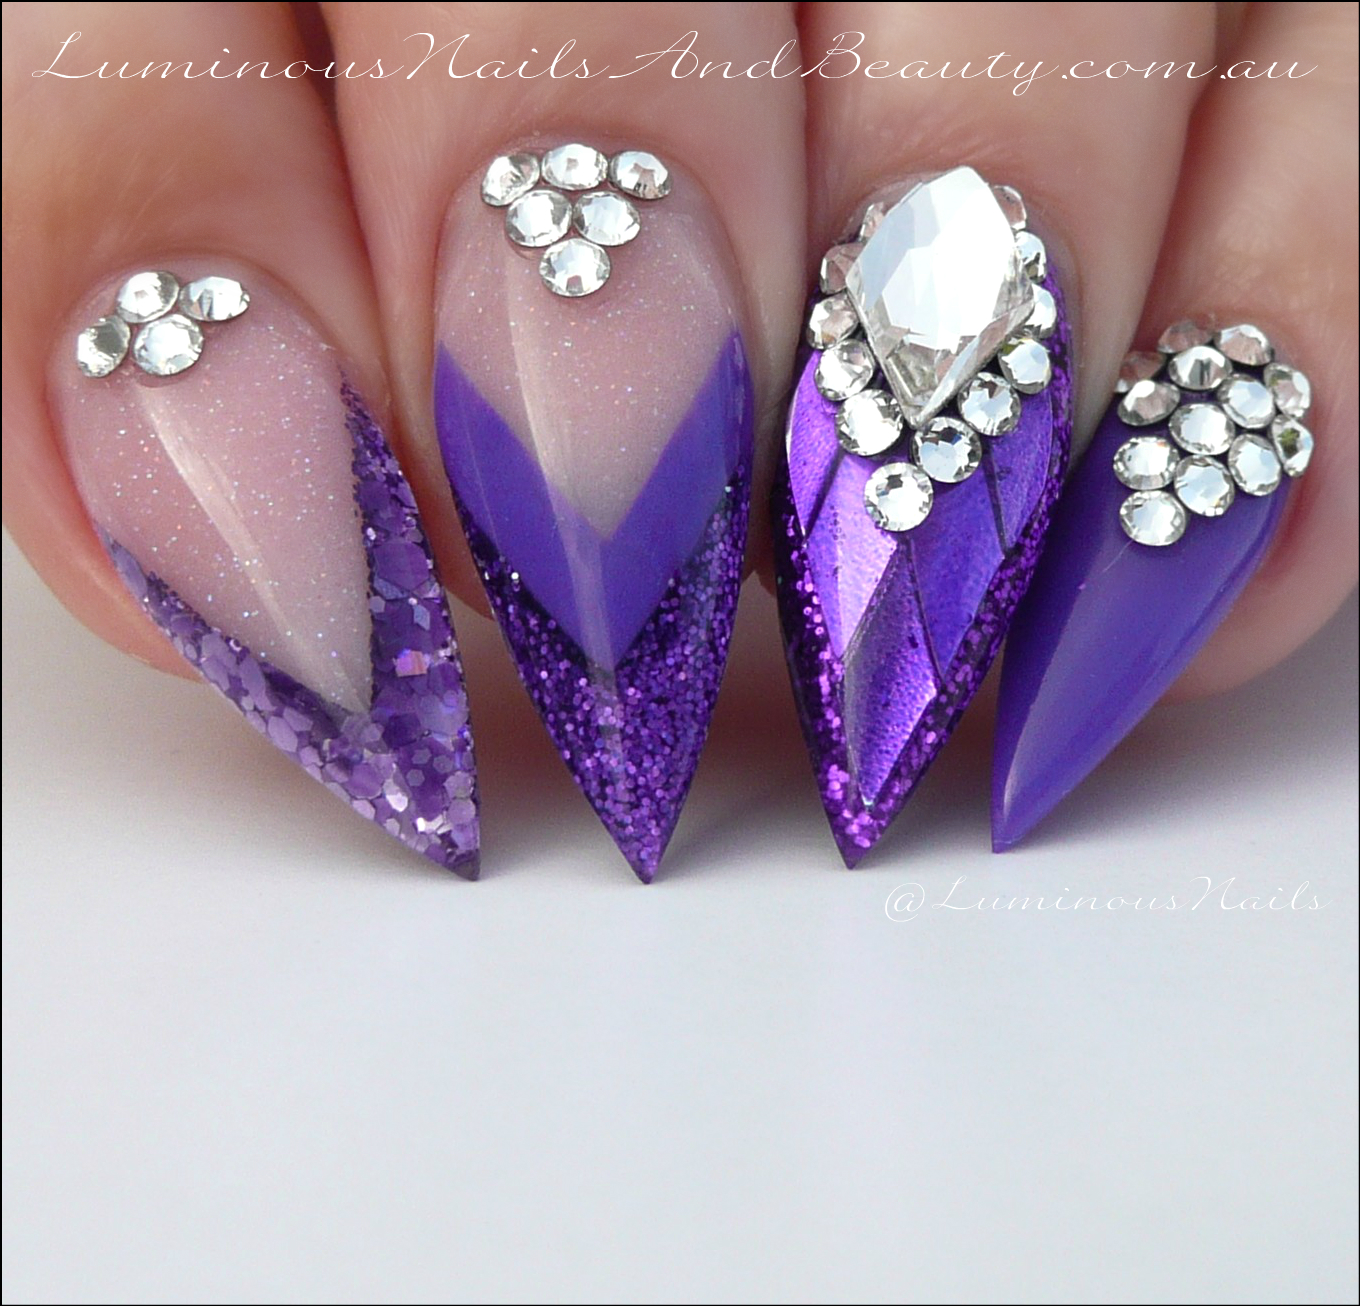 Luminous Nails: June 2016